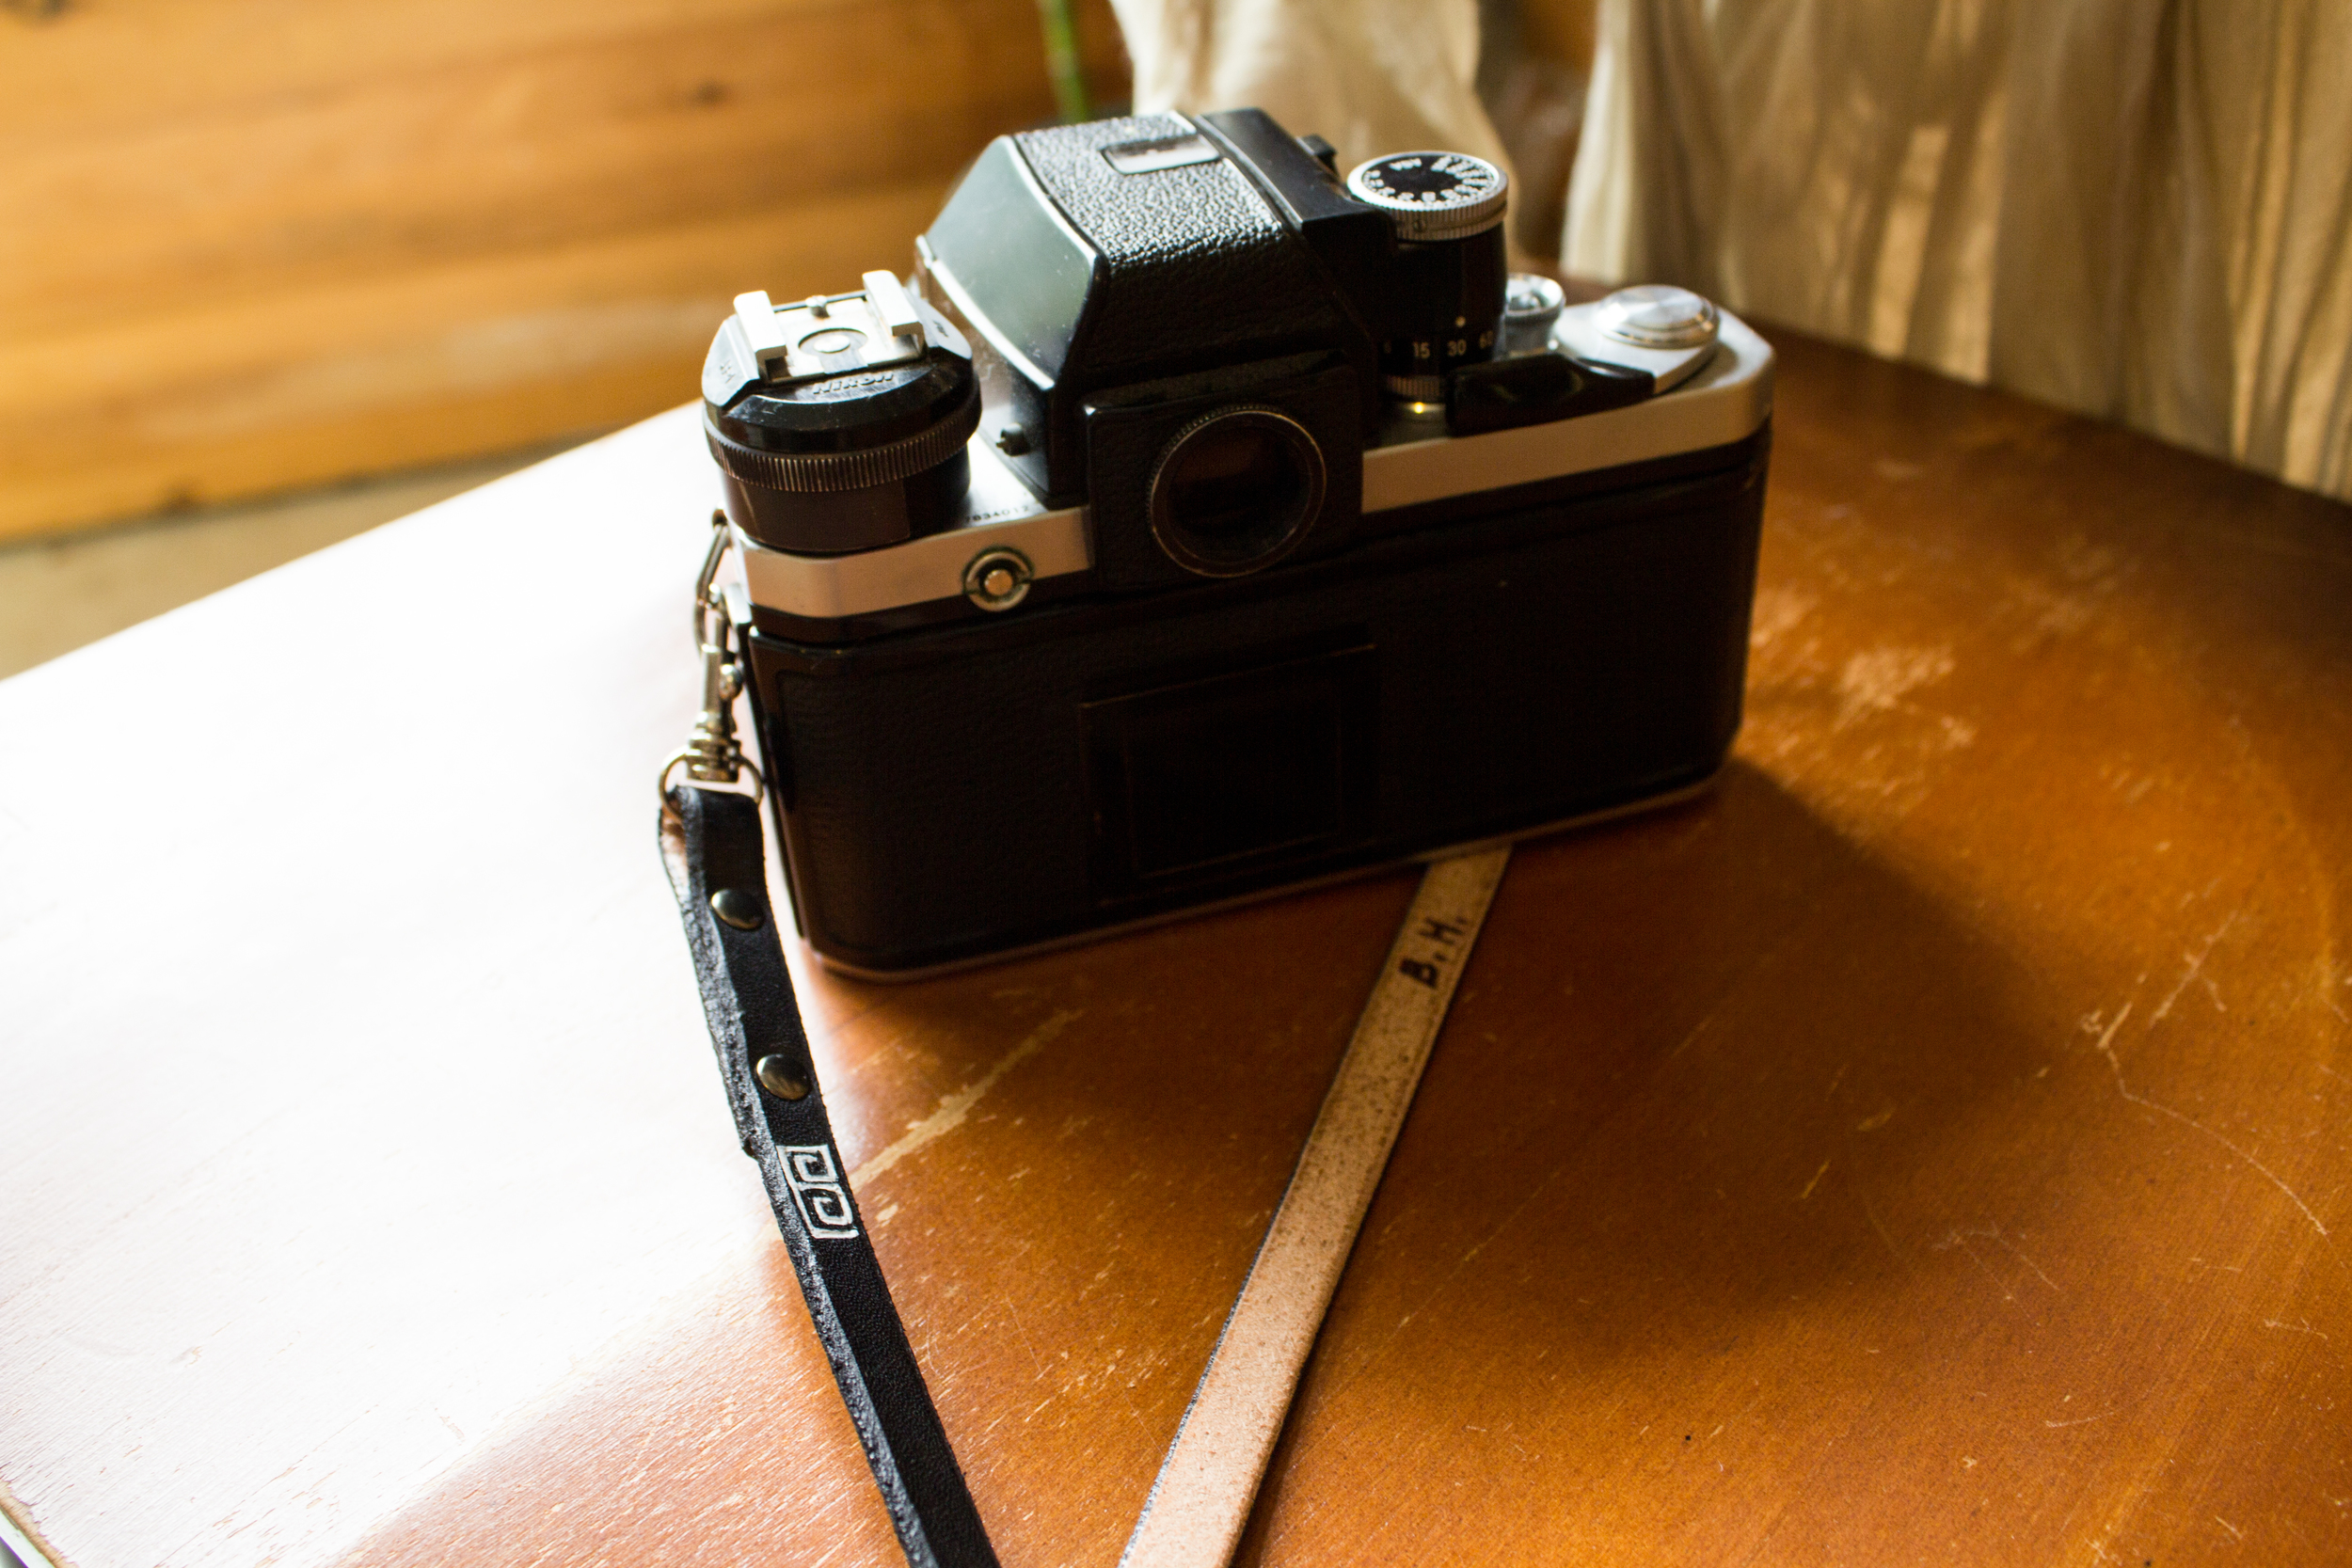 leather camera strap for wrist and neck-4